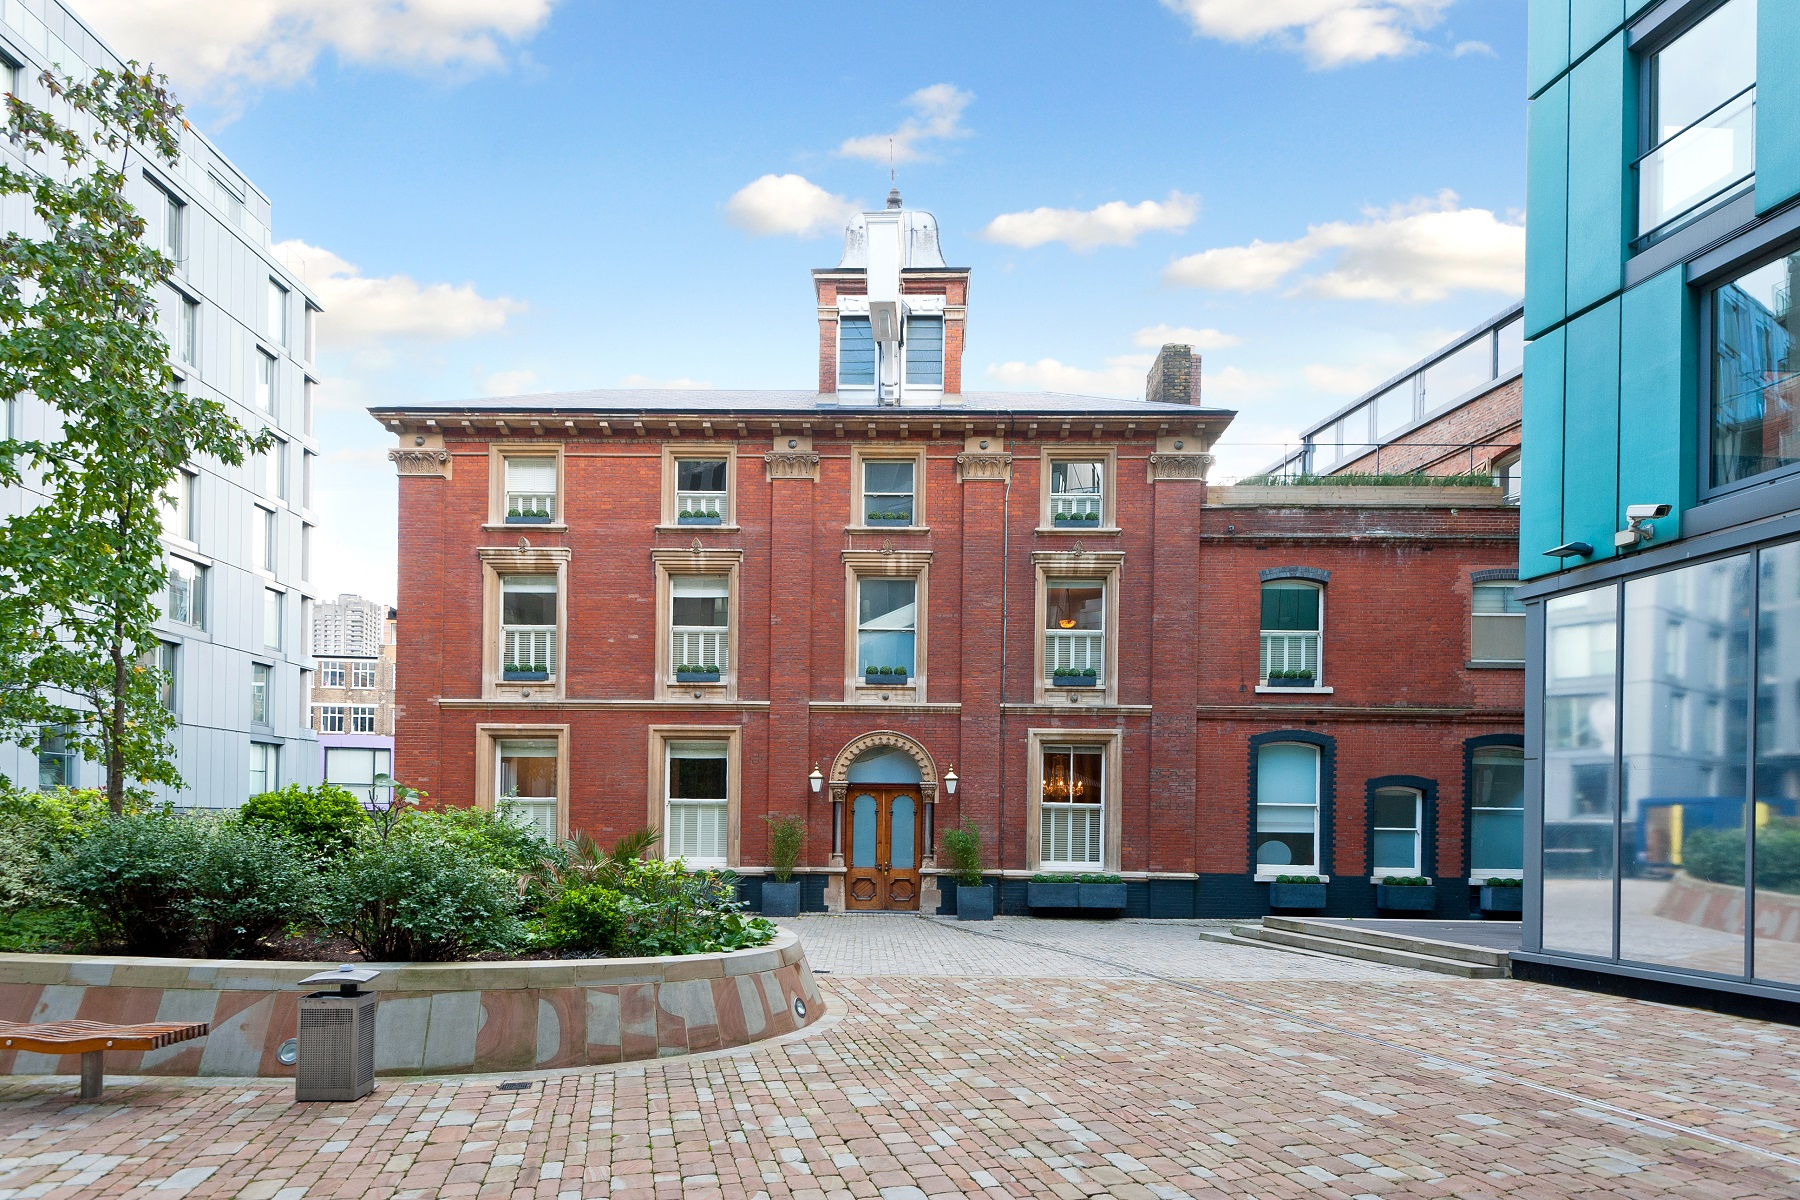 Single Family Home for Sale at The Old Clock House London, England, United Kingdom